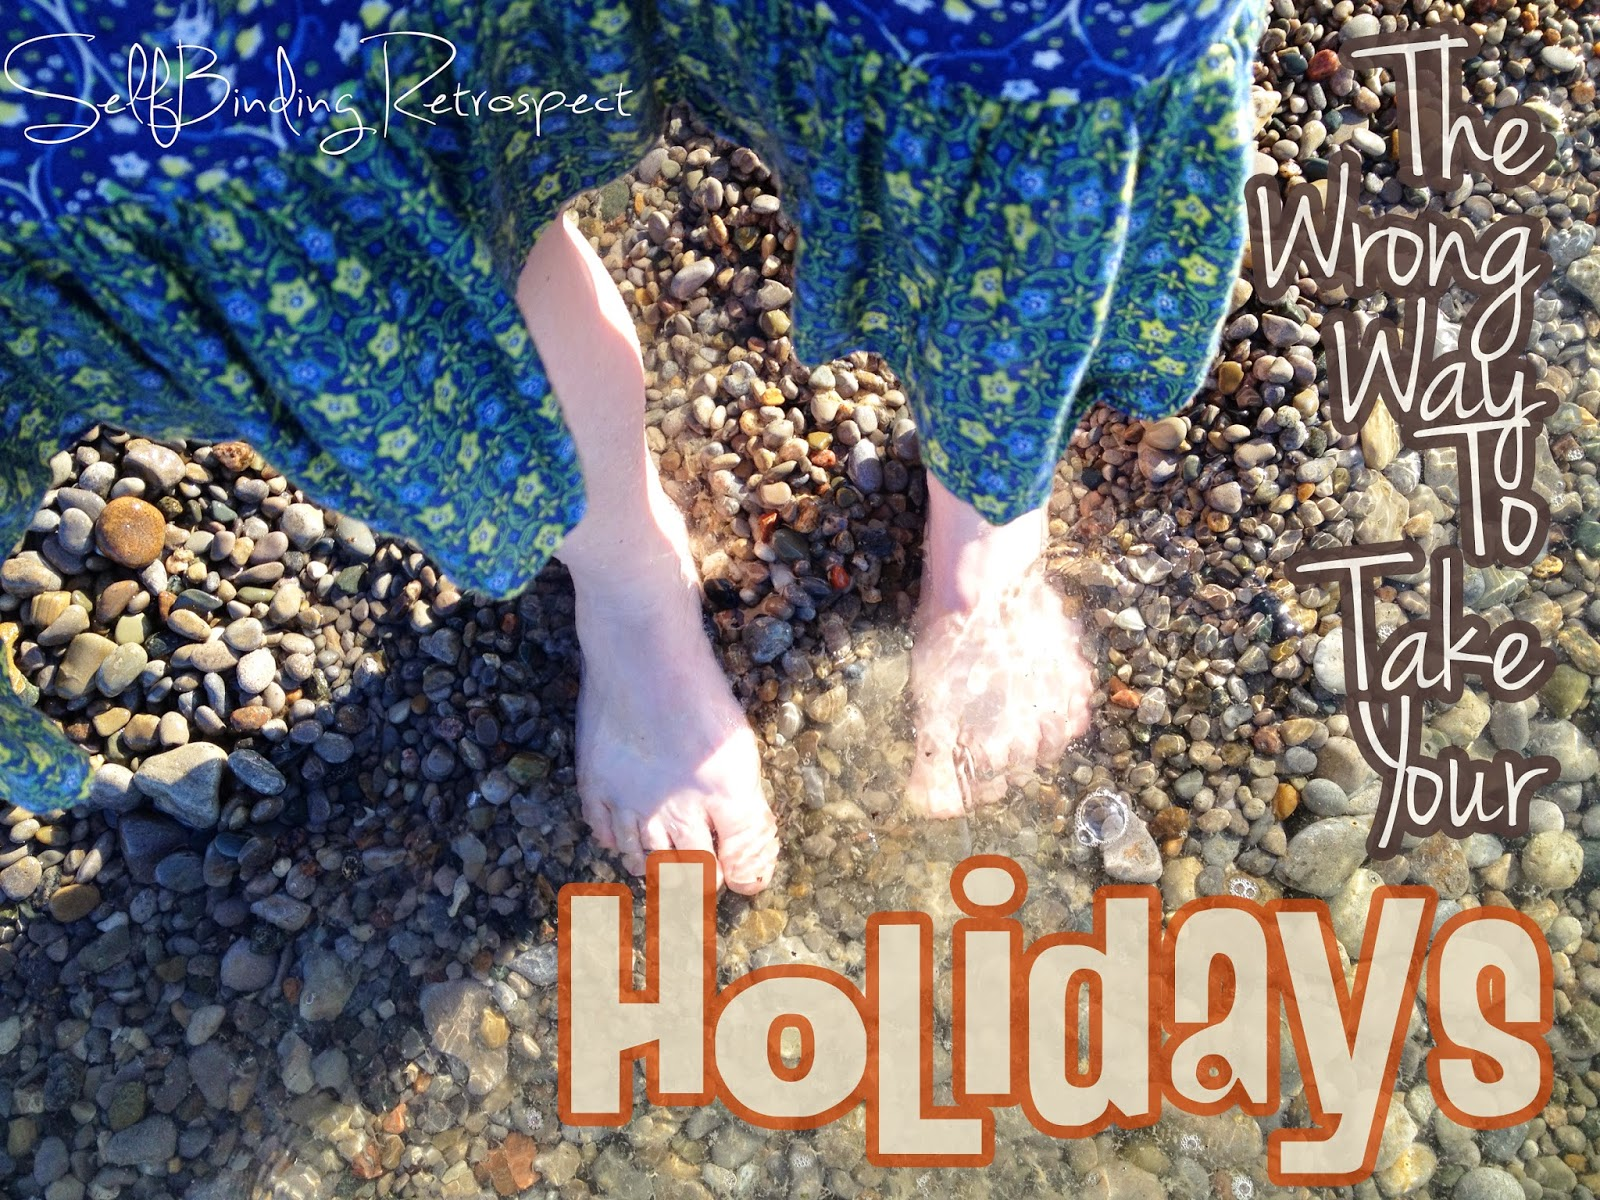 The Wrong Way To Take Your Holidays - SelfBinding Retrospect by Alanna Rusnak